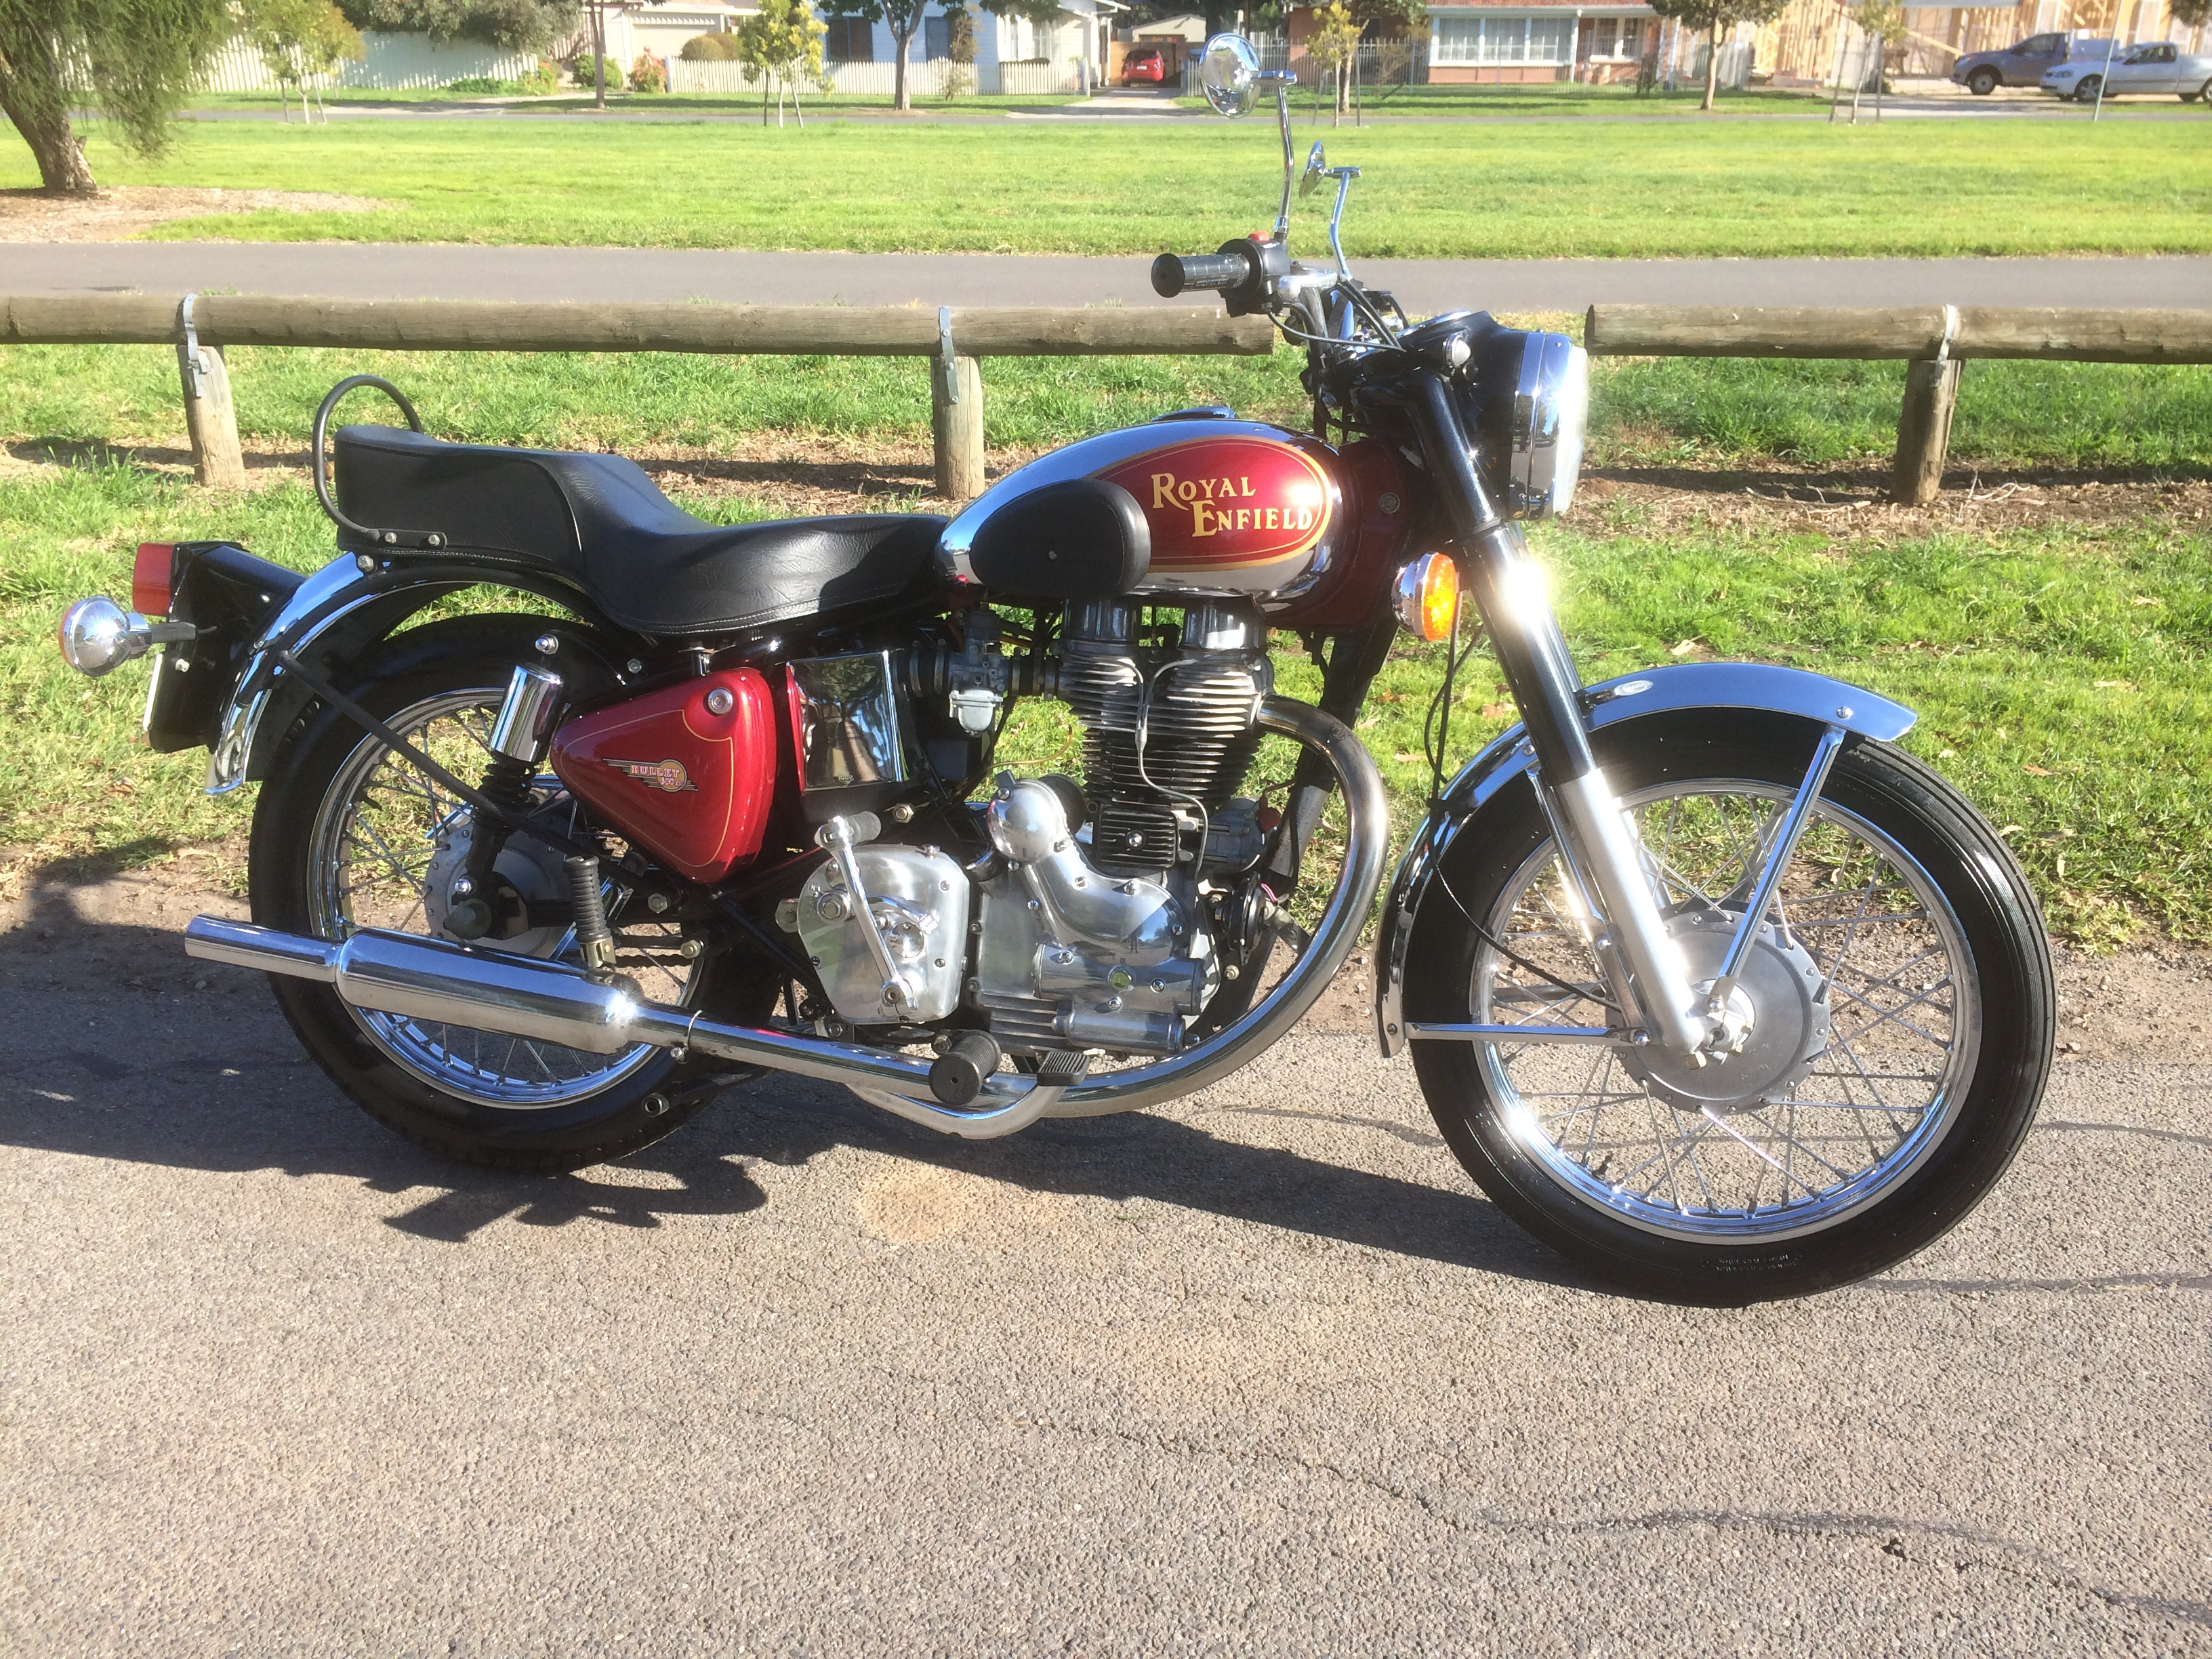 Royal Enfield Bullet 500 Classic 2008 images #127676